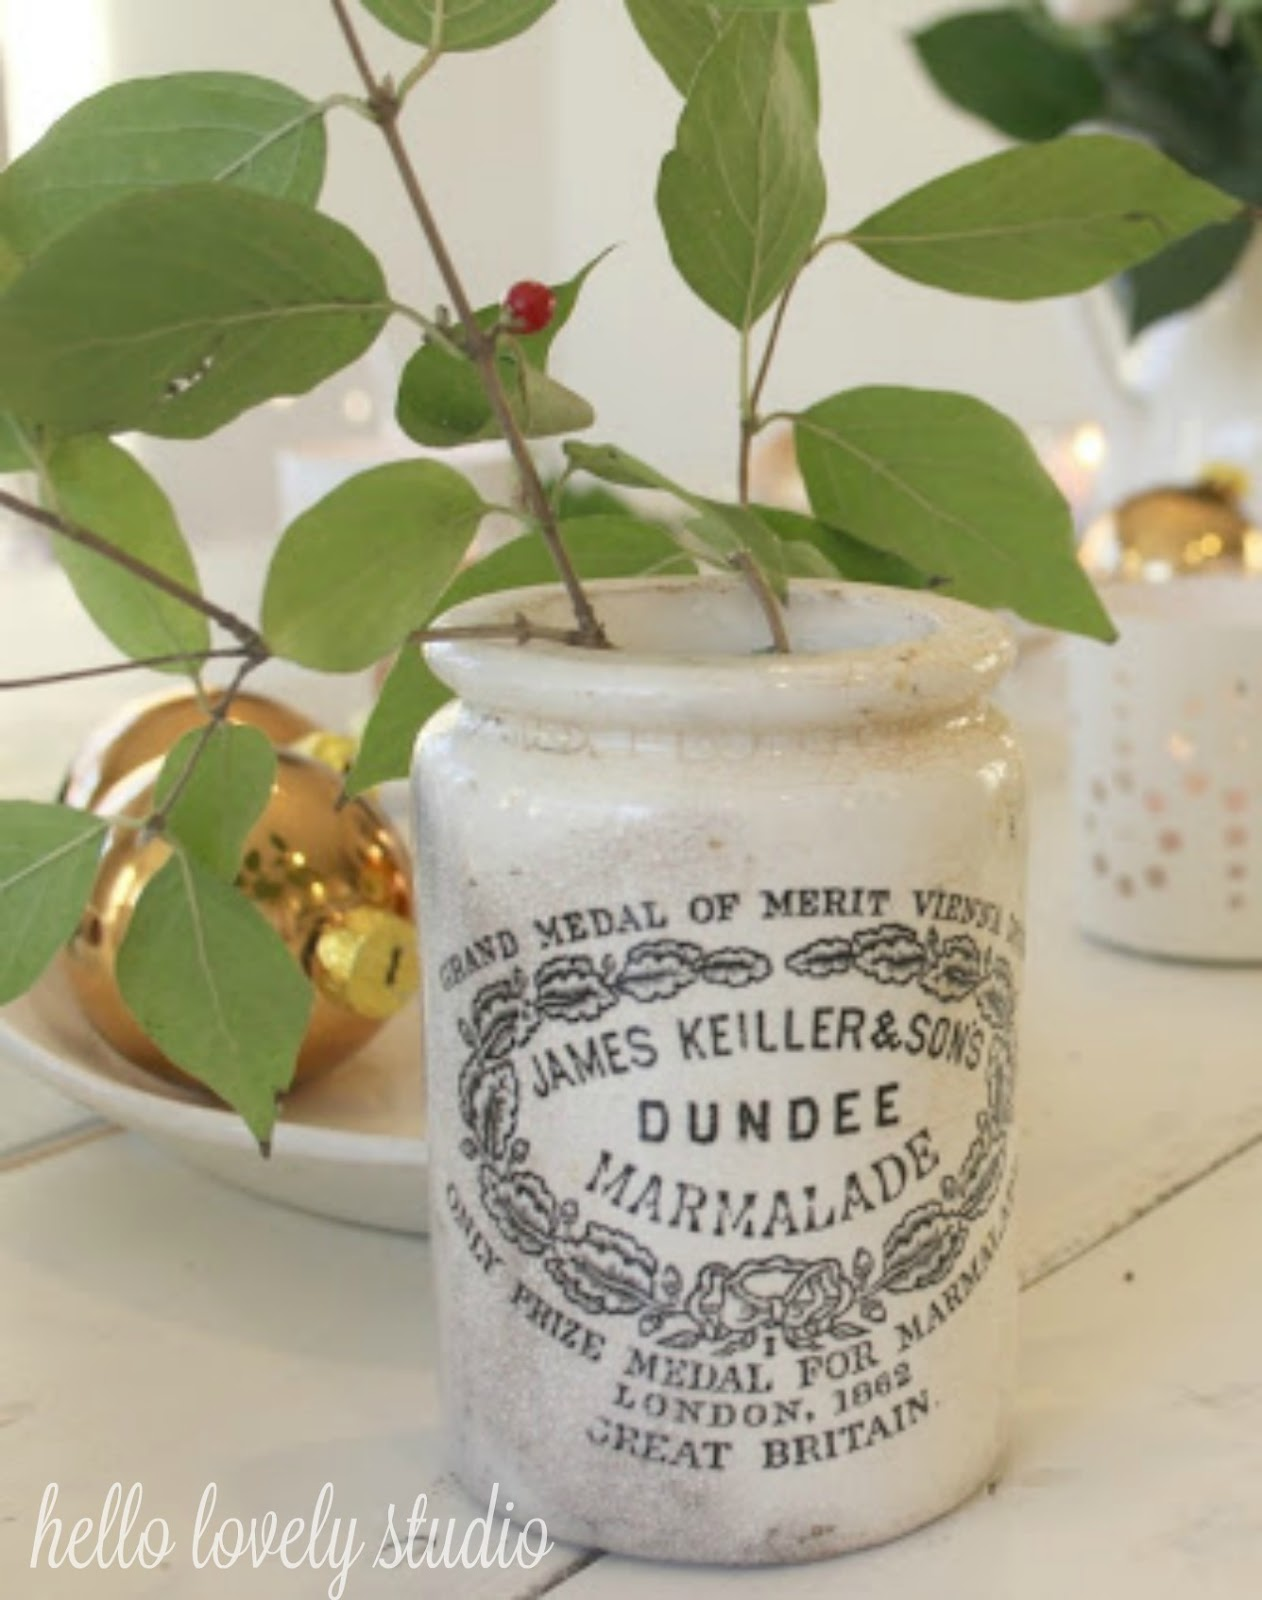 James Keiller Dundee marmalade English crock jar with greenery and berries - Hello Lovely Studio